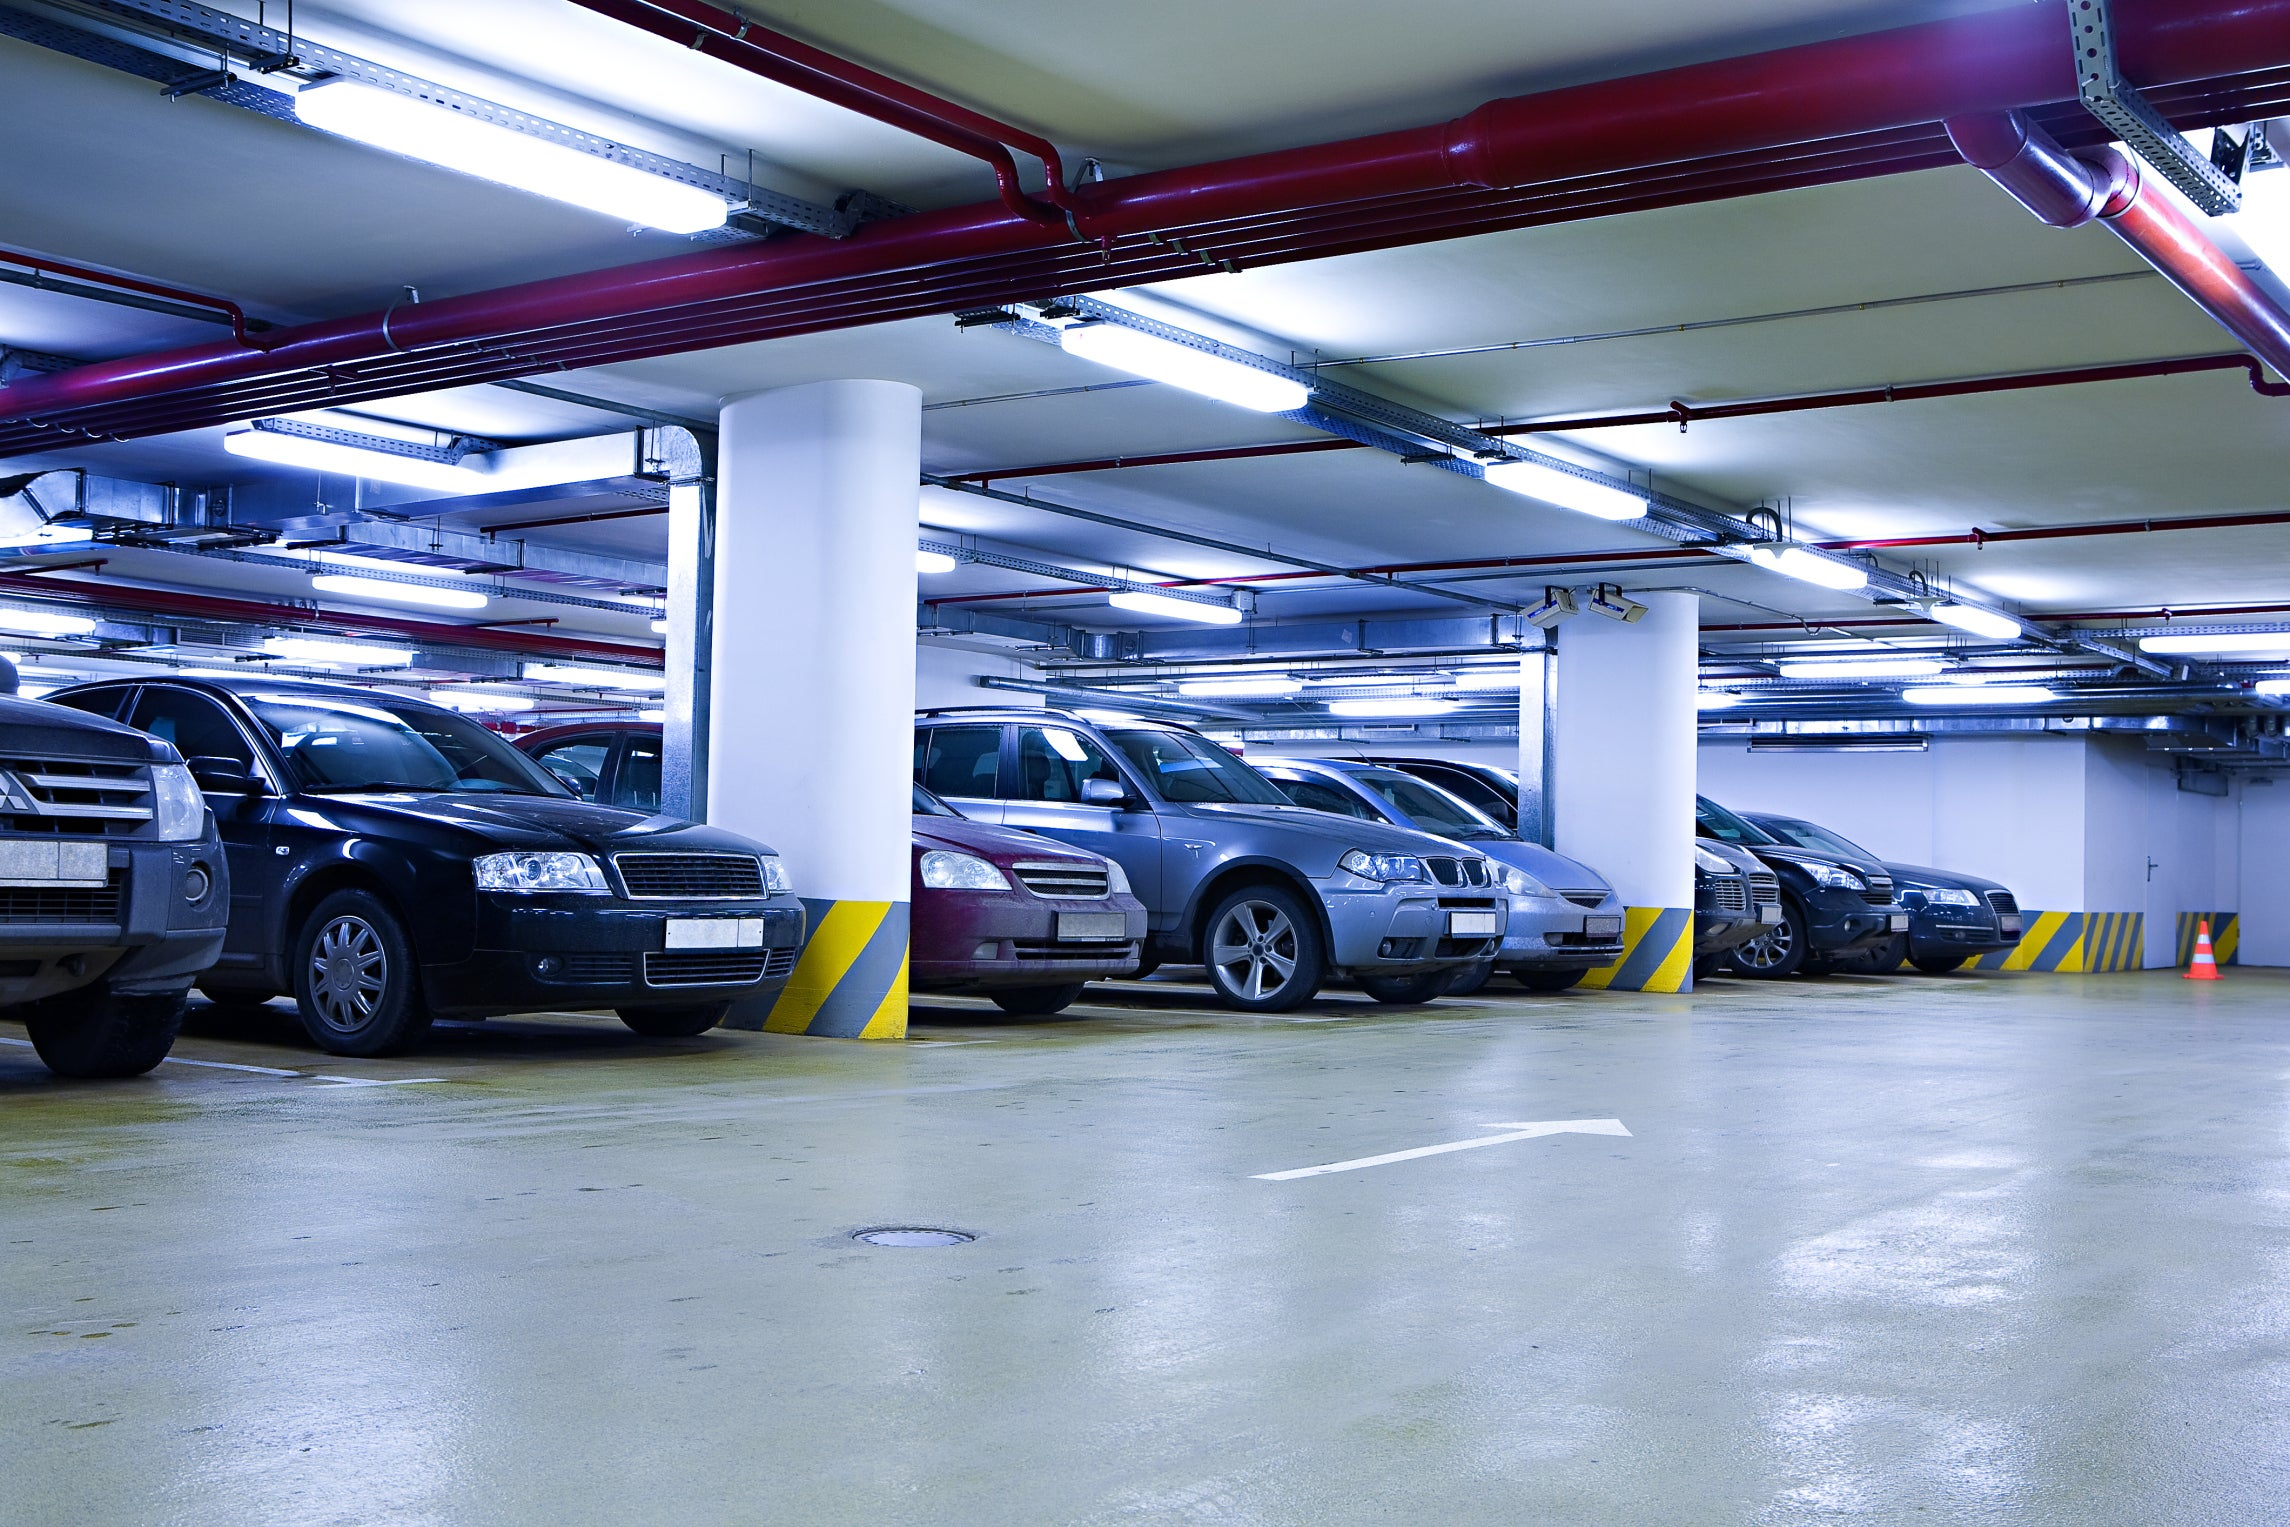 Self Parking Car Technology Could Help Drivers In Crowded Or Tightly Packed Lots Assuming We Can Park Our Egos At Home